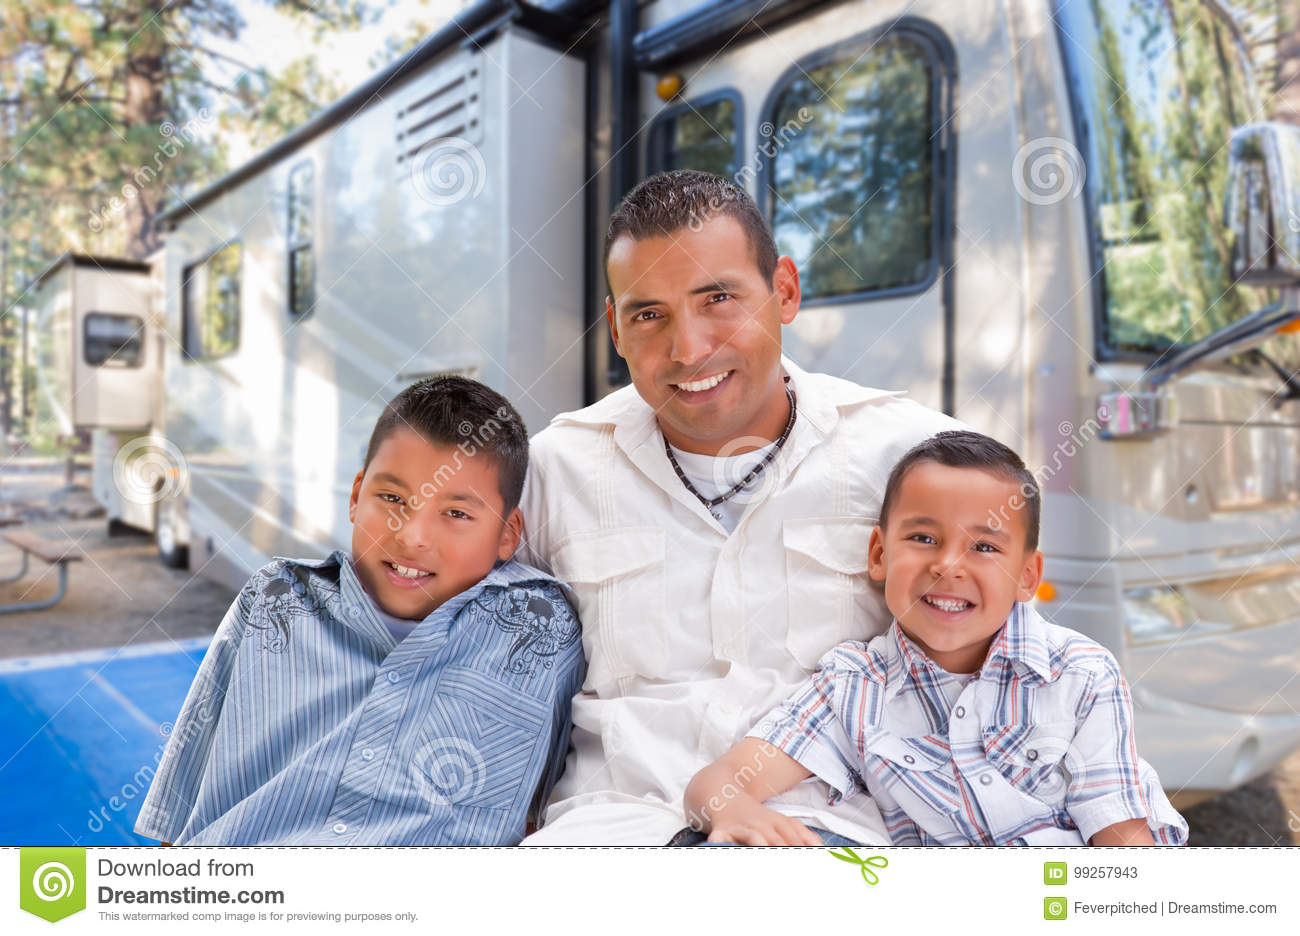 Happy Hispanic Father and Sons In Front of Their Beautiful RV